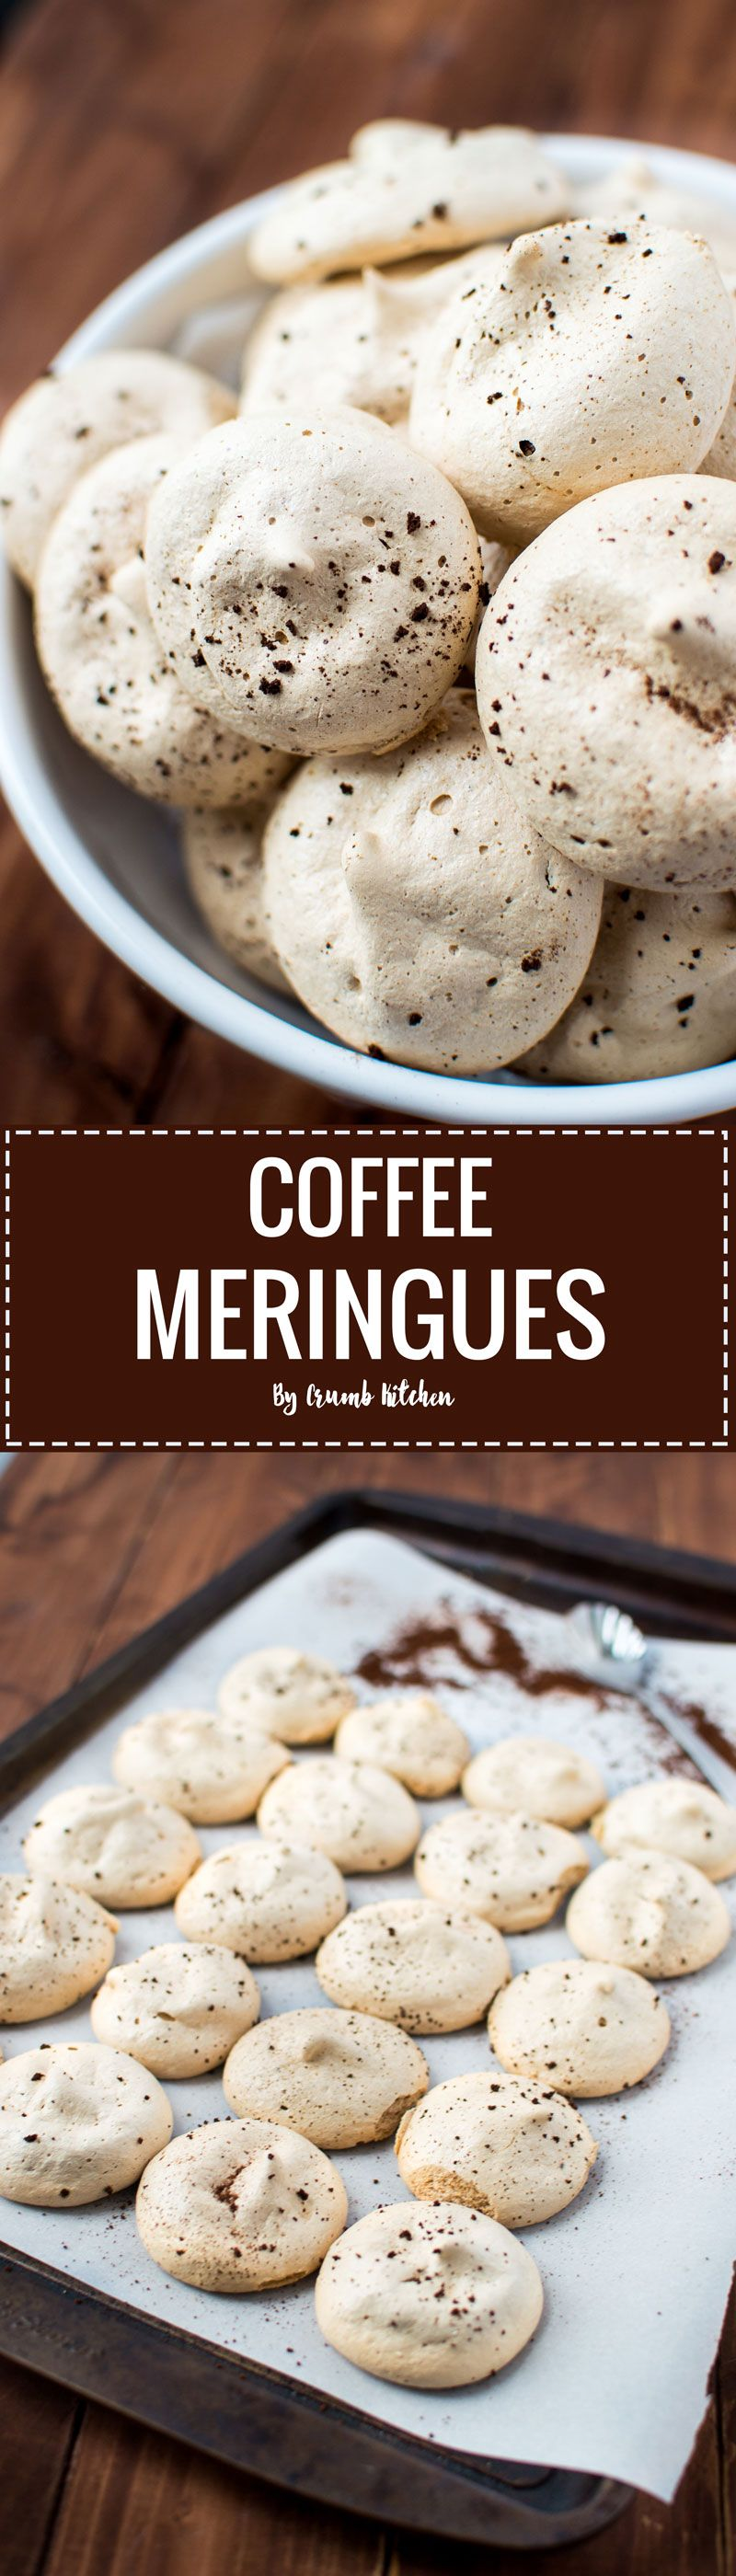 Need that caffeine fix? Get it with these Coffee Meringues, a ...